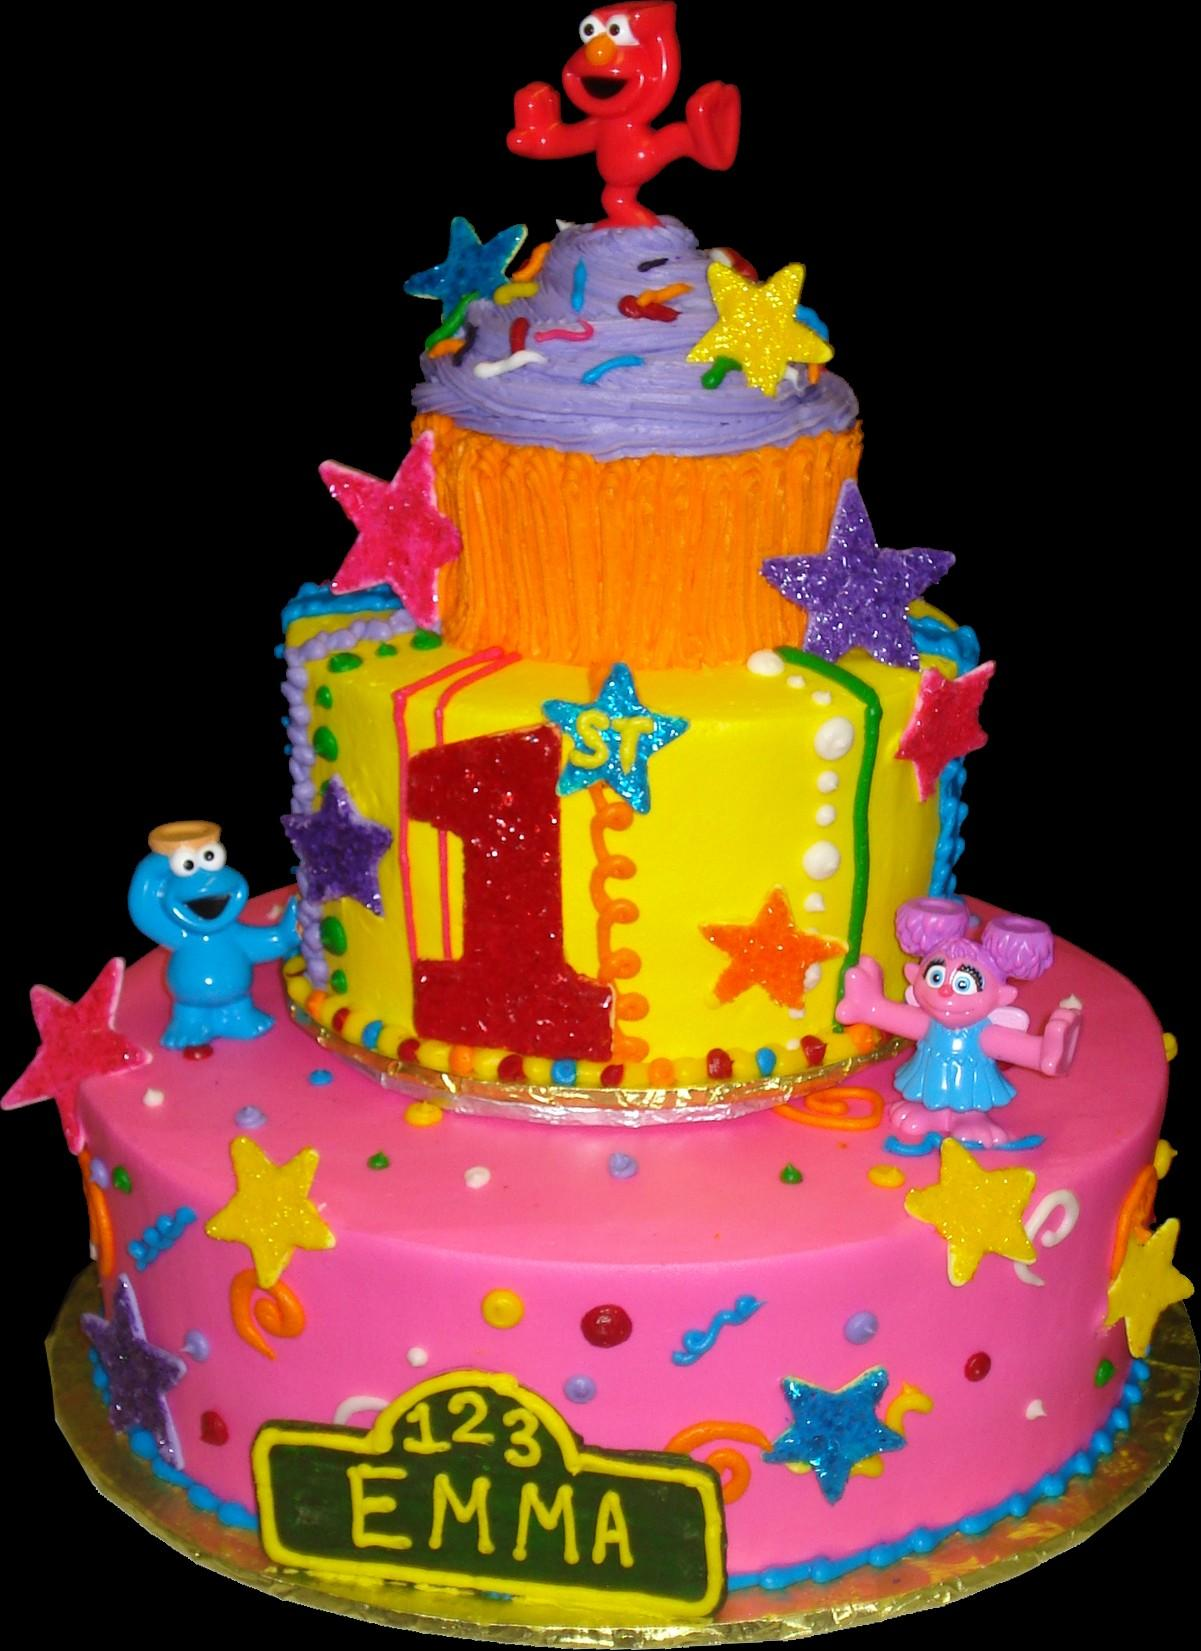 Sesame Street 1st Birthday Cake Buttercream Iced 2 Round Tiers Decorated With Stars